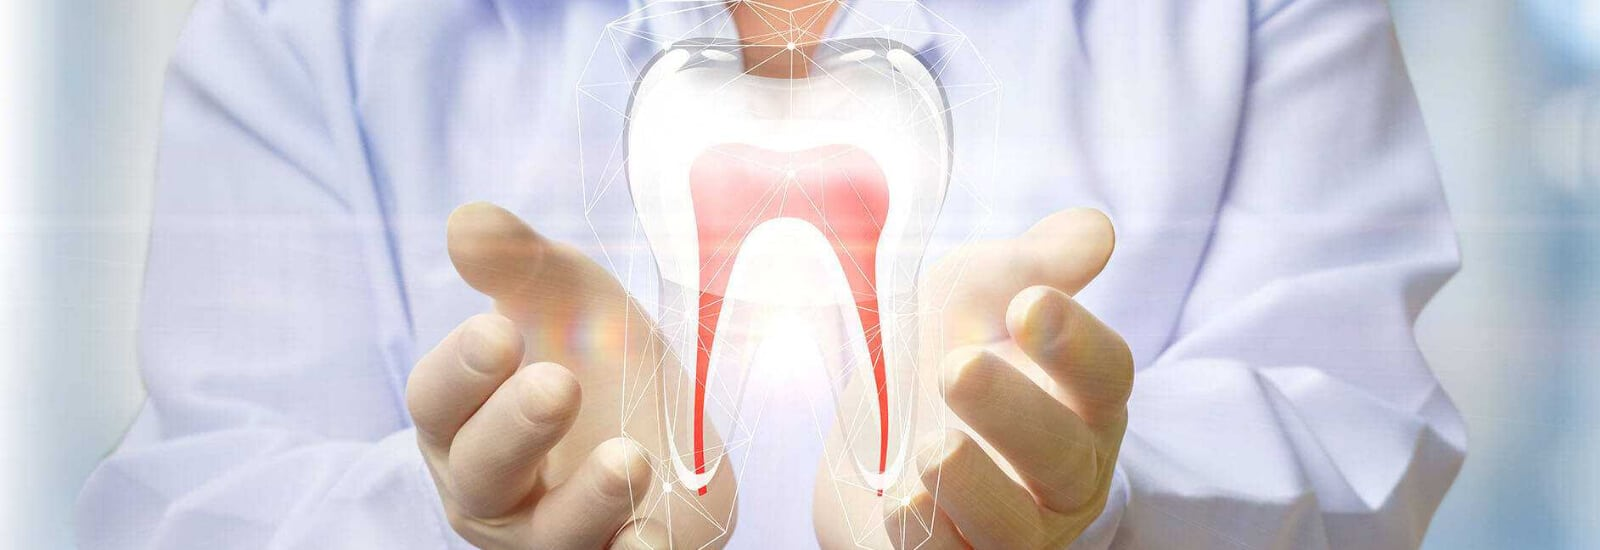 root-canal-therapy-bangalore